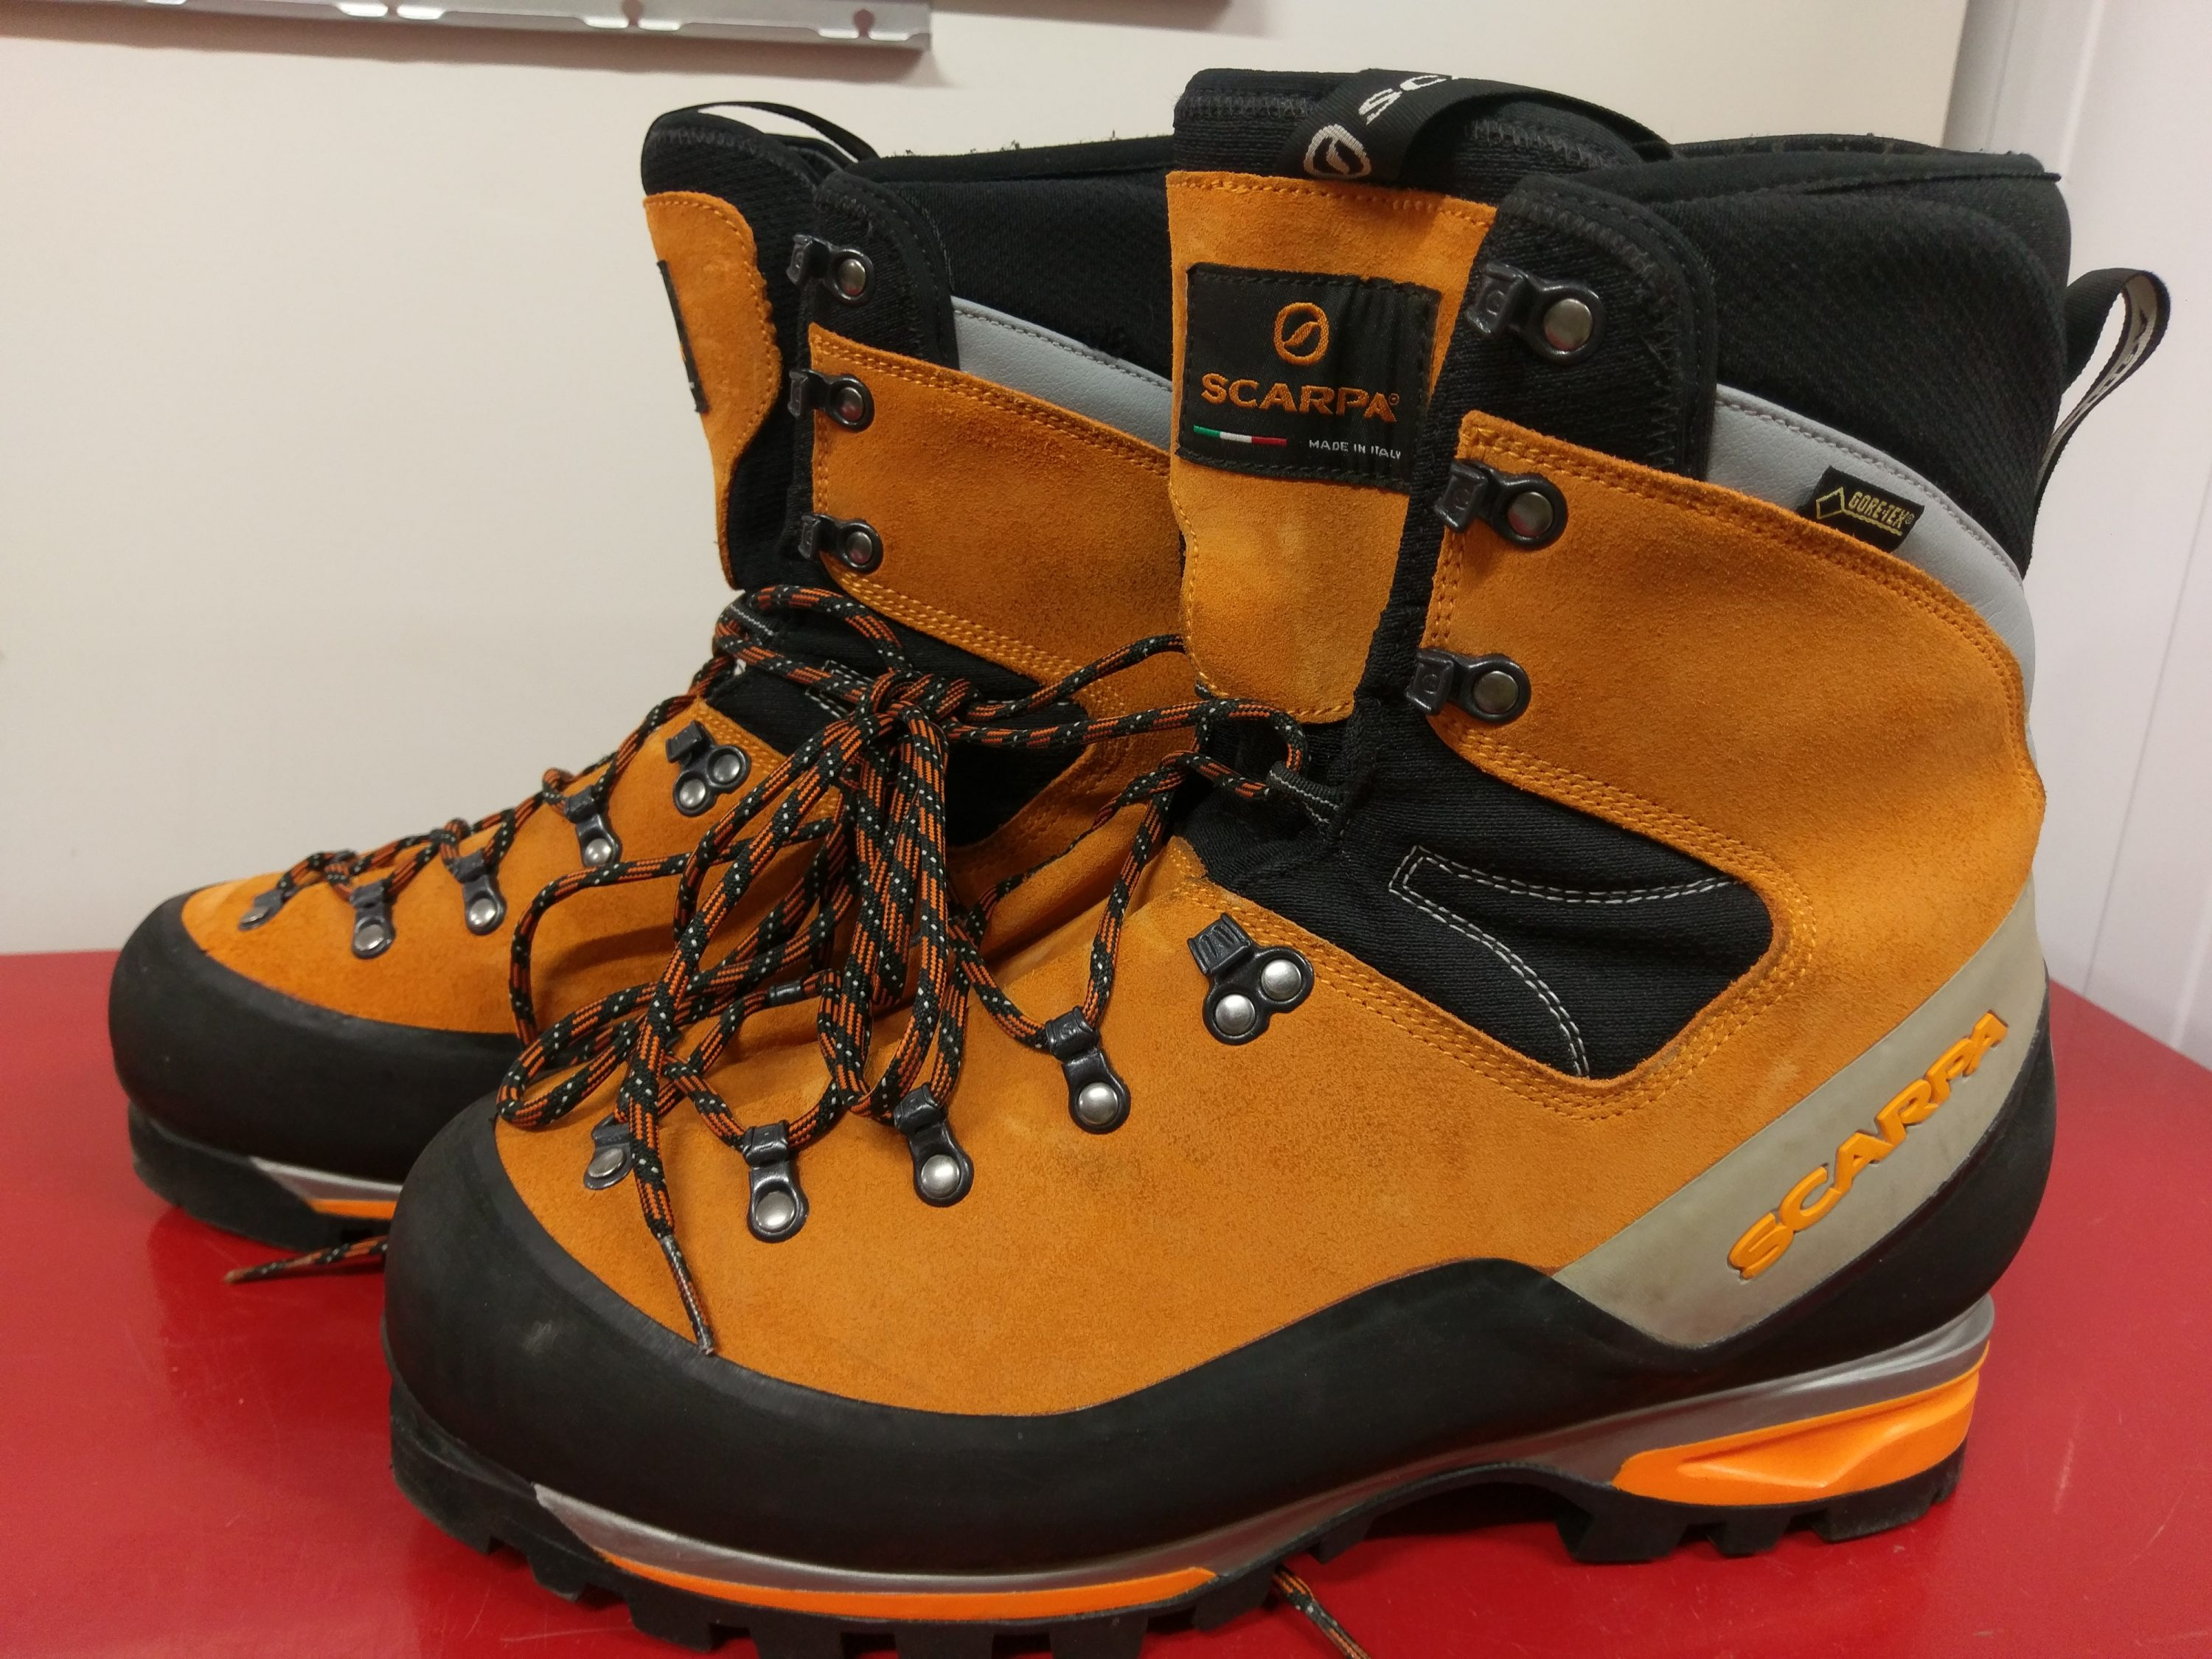 Should You Buy Or Rent Alpine Mountaineering Boots